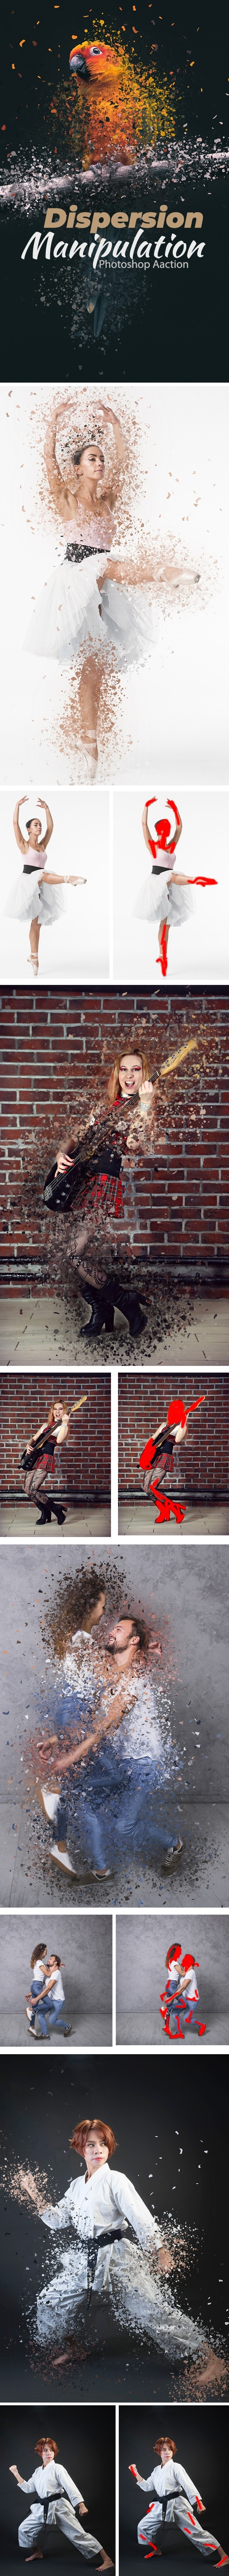 Dispersion Manipulation Photoshop Action - Photo Effects Actions